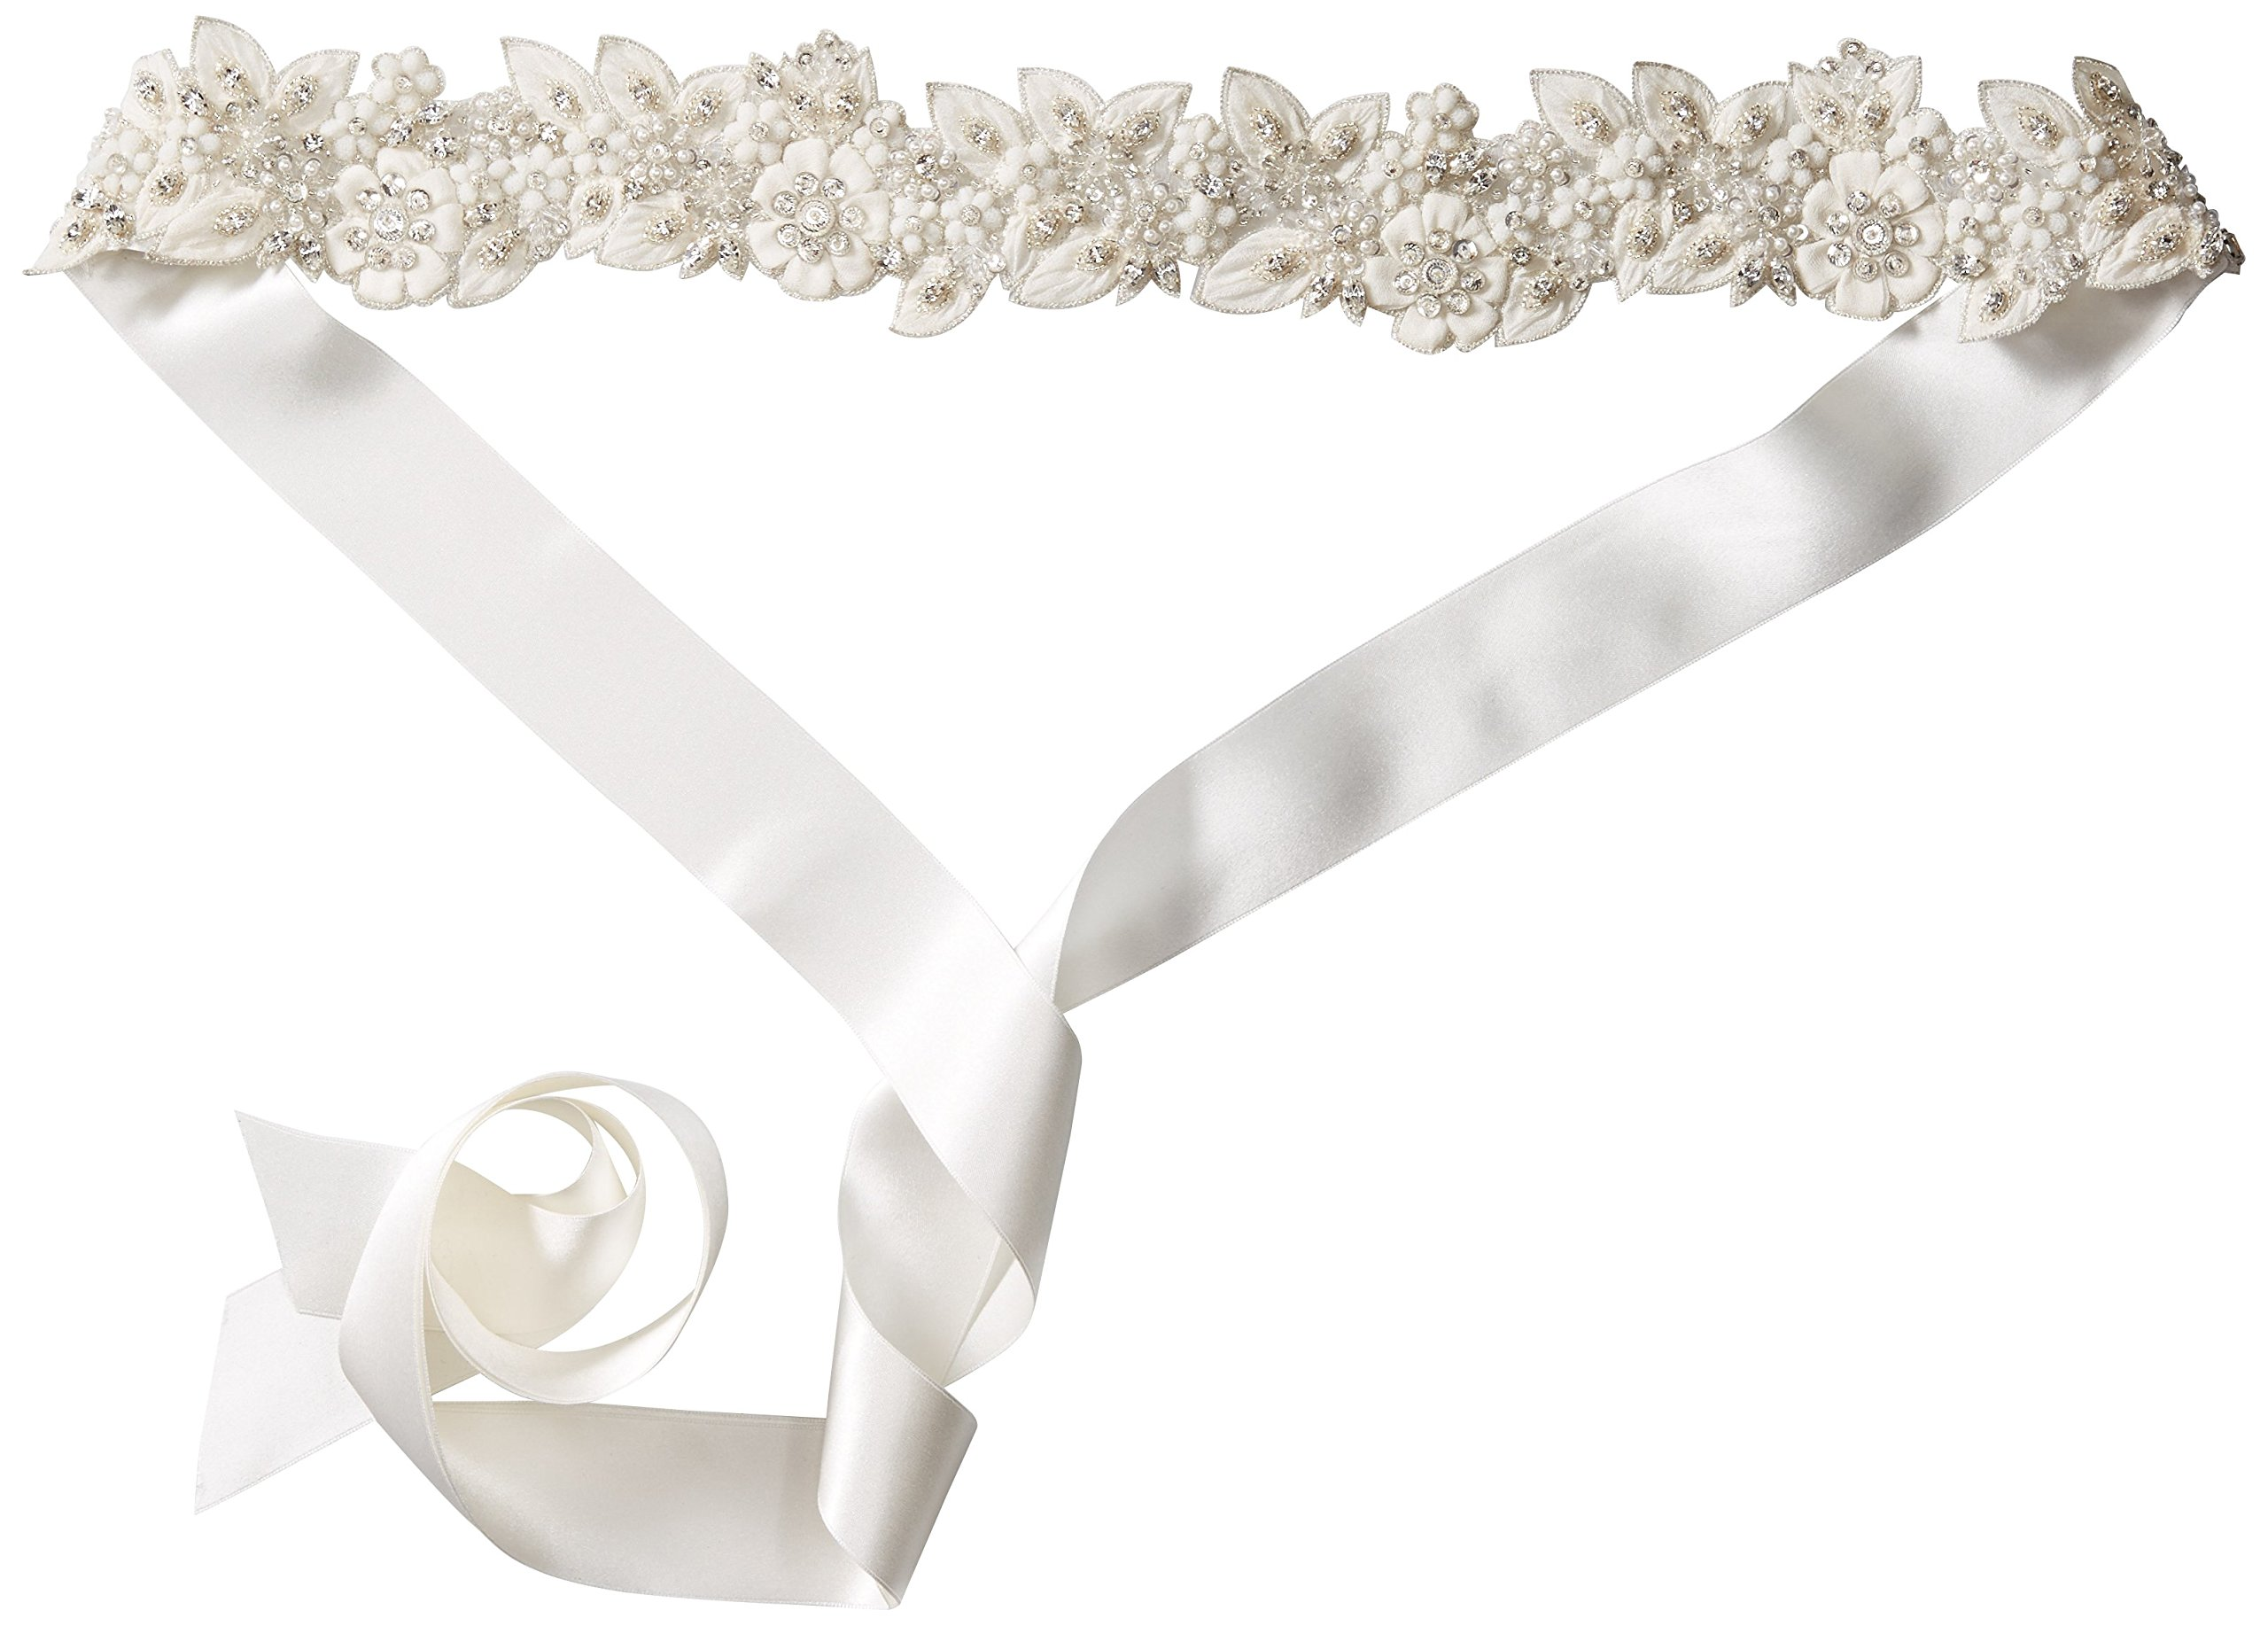 Twigs & Honey Women's Petite Flower and Blossom Embroidered Bridal Belt, Off White, One Size by Twigs & Honey